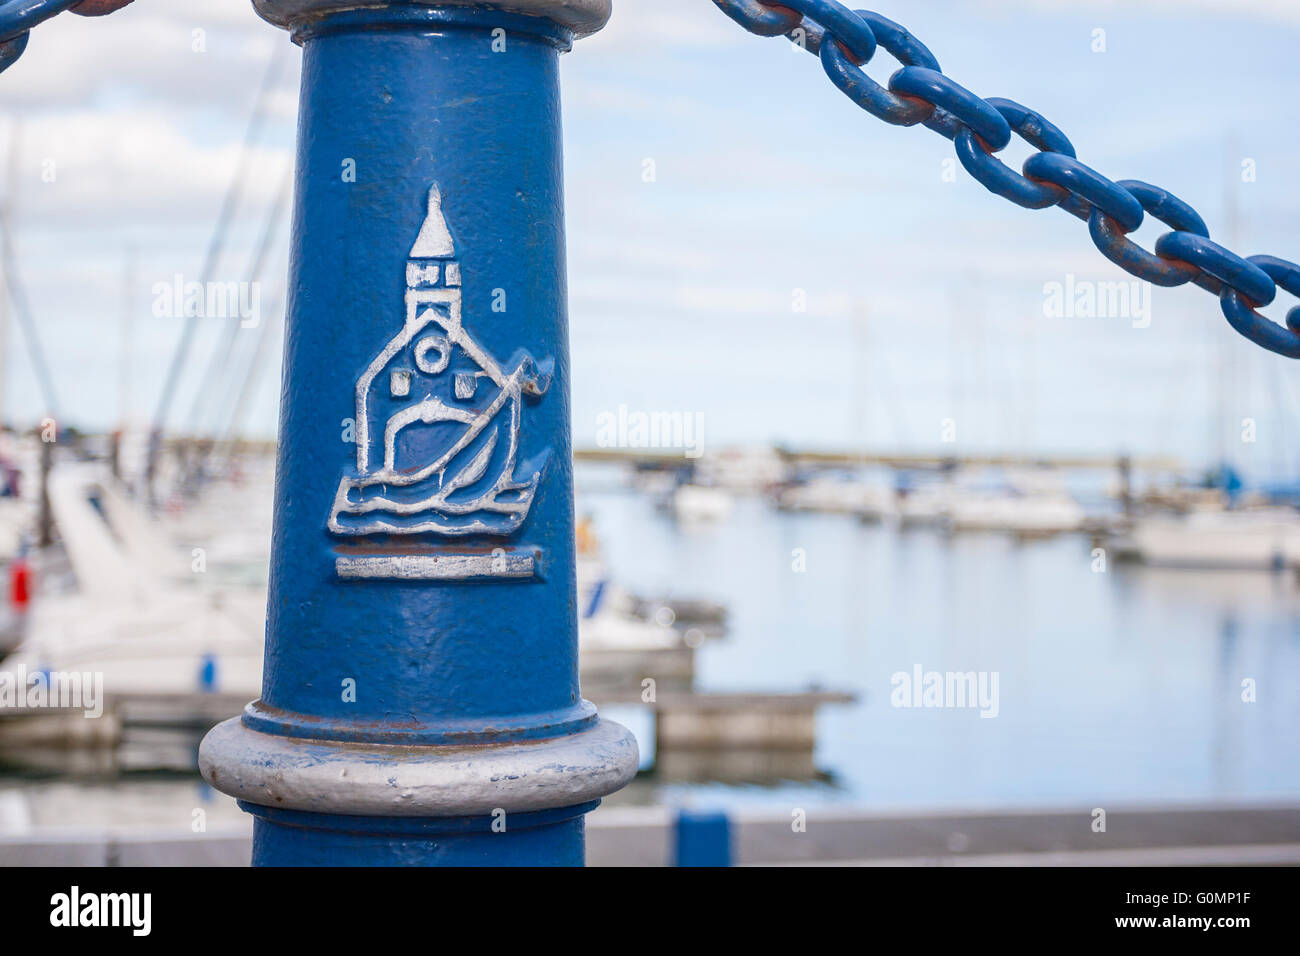 close-up of Detail marina blue pole with malahide port drawing - Stock Image